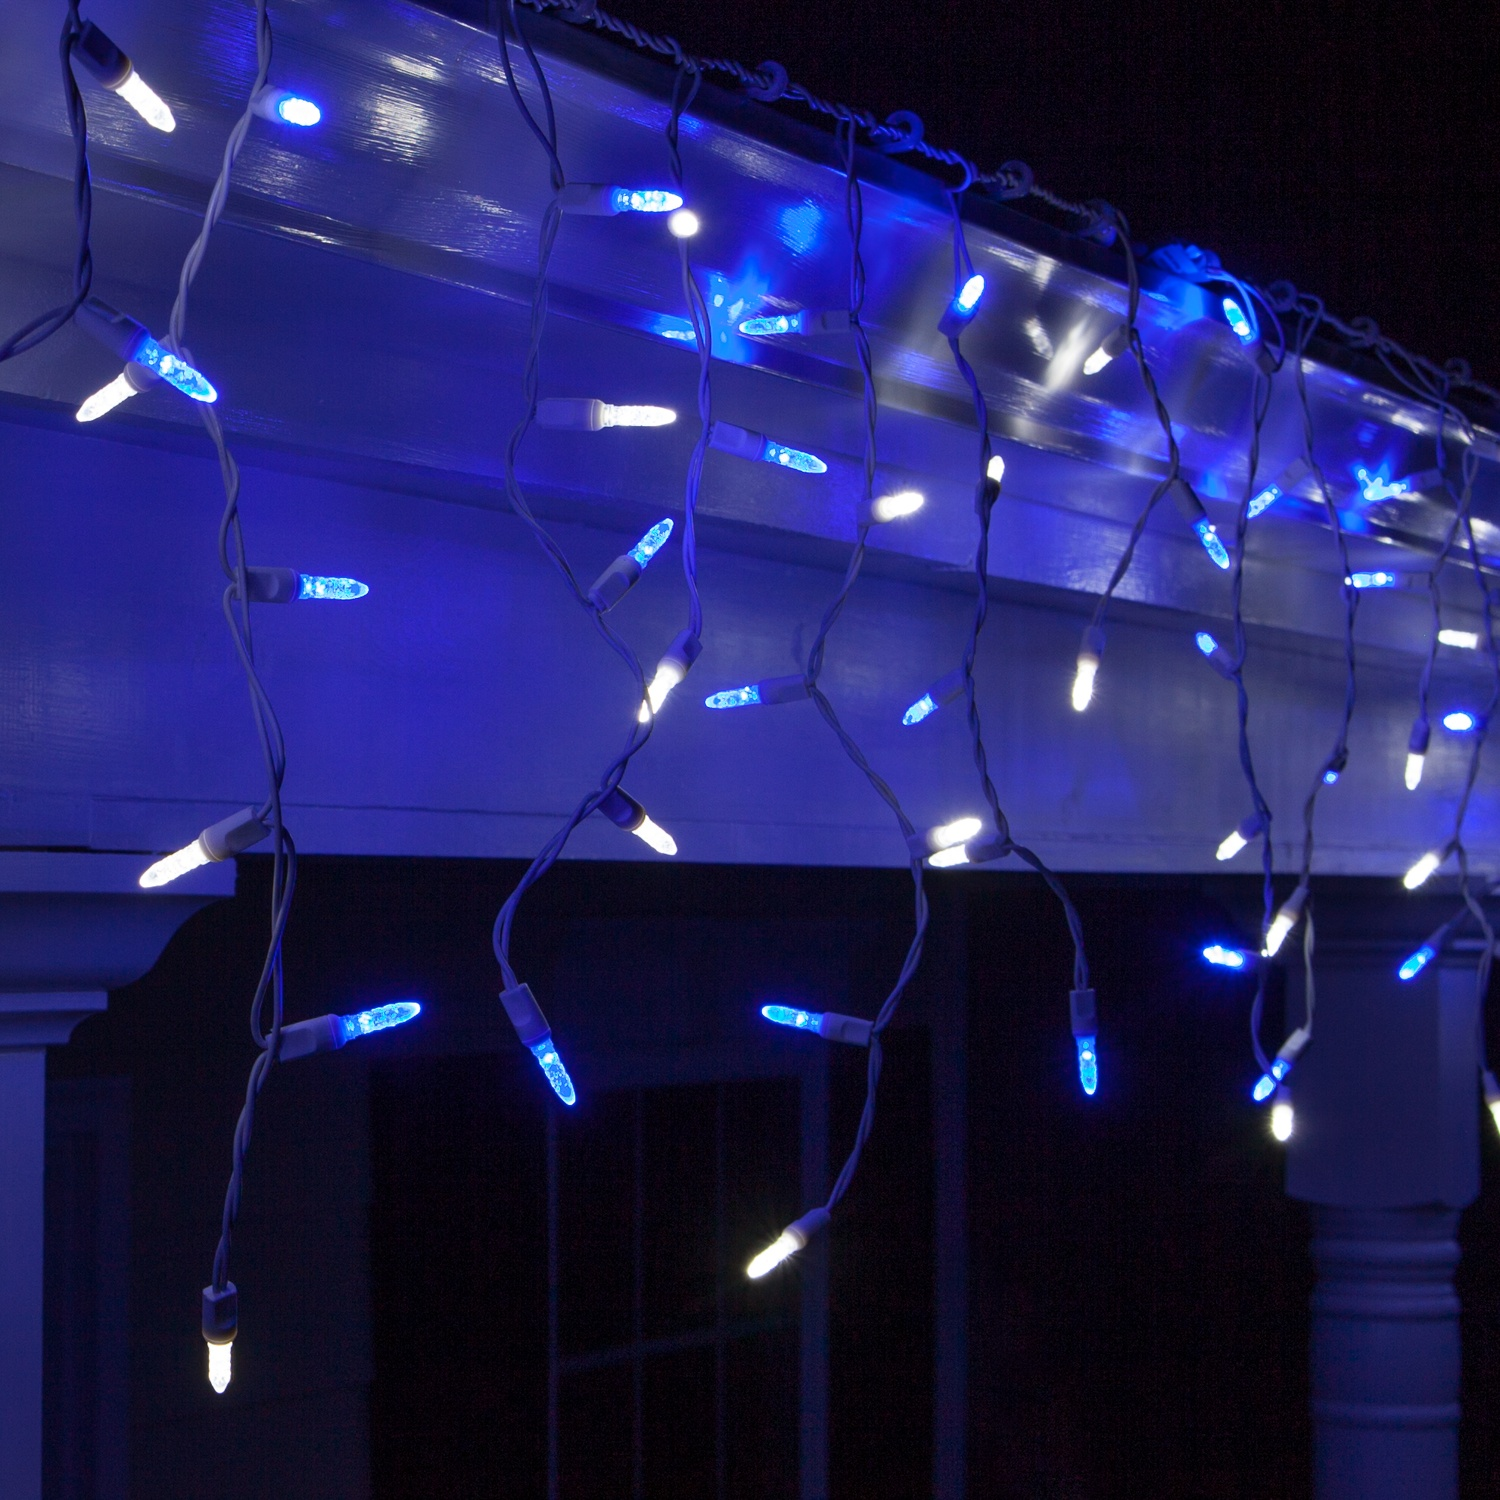 led christmas lights 70 m5 blue and white led icicle lights - White Icicle Christmas Lights